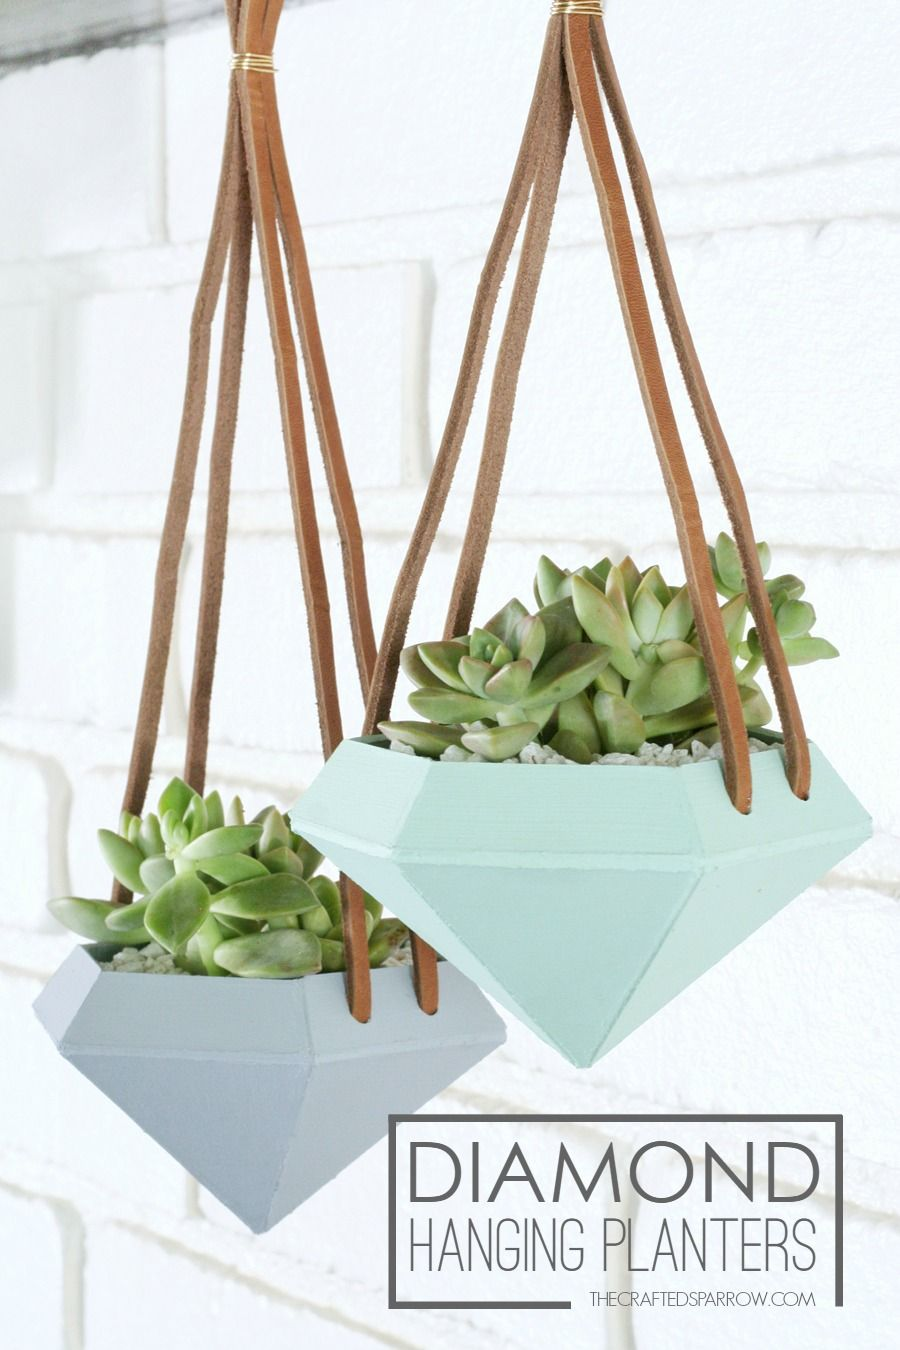 15 of the most amazing hanging planter ideas page 3 of 16